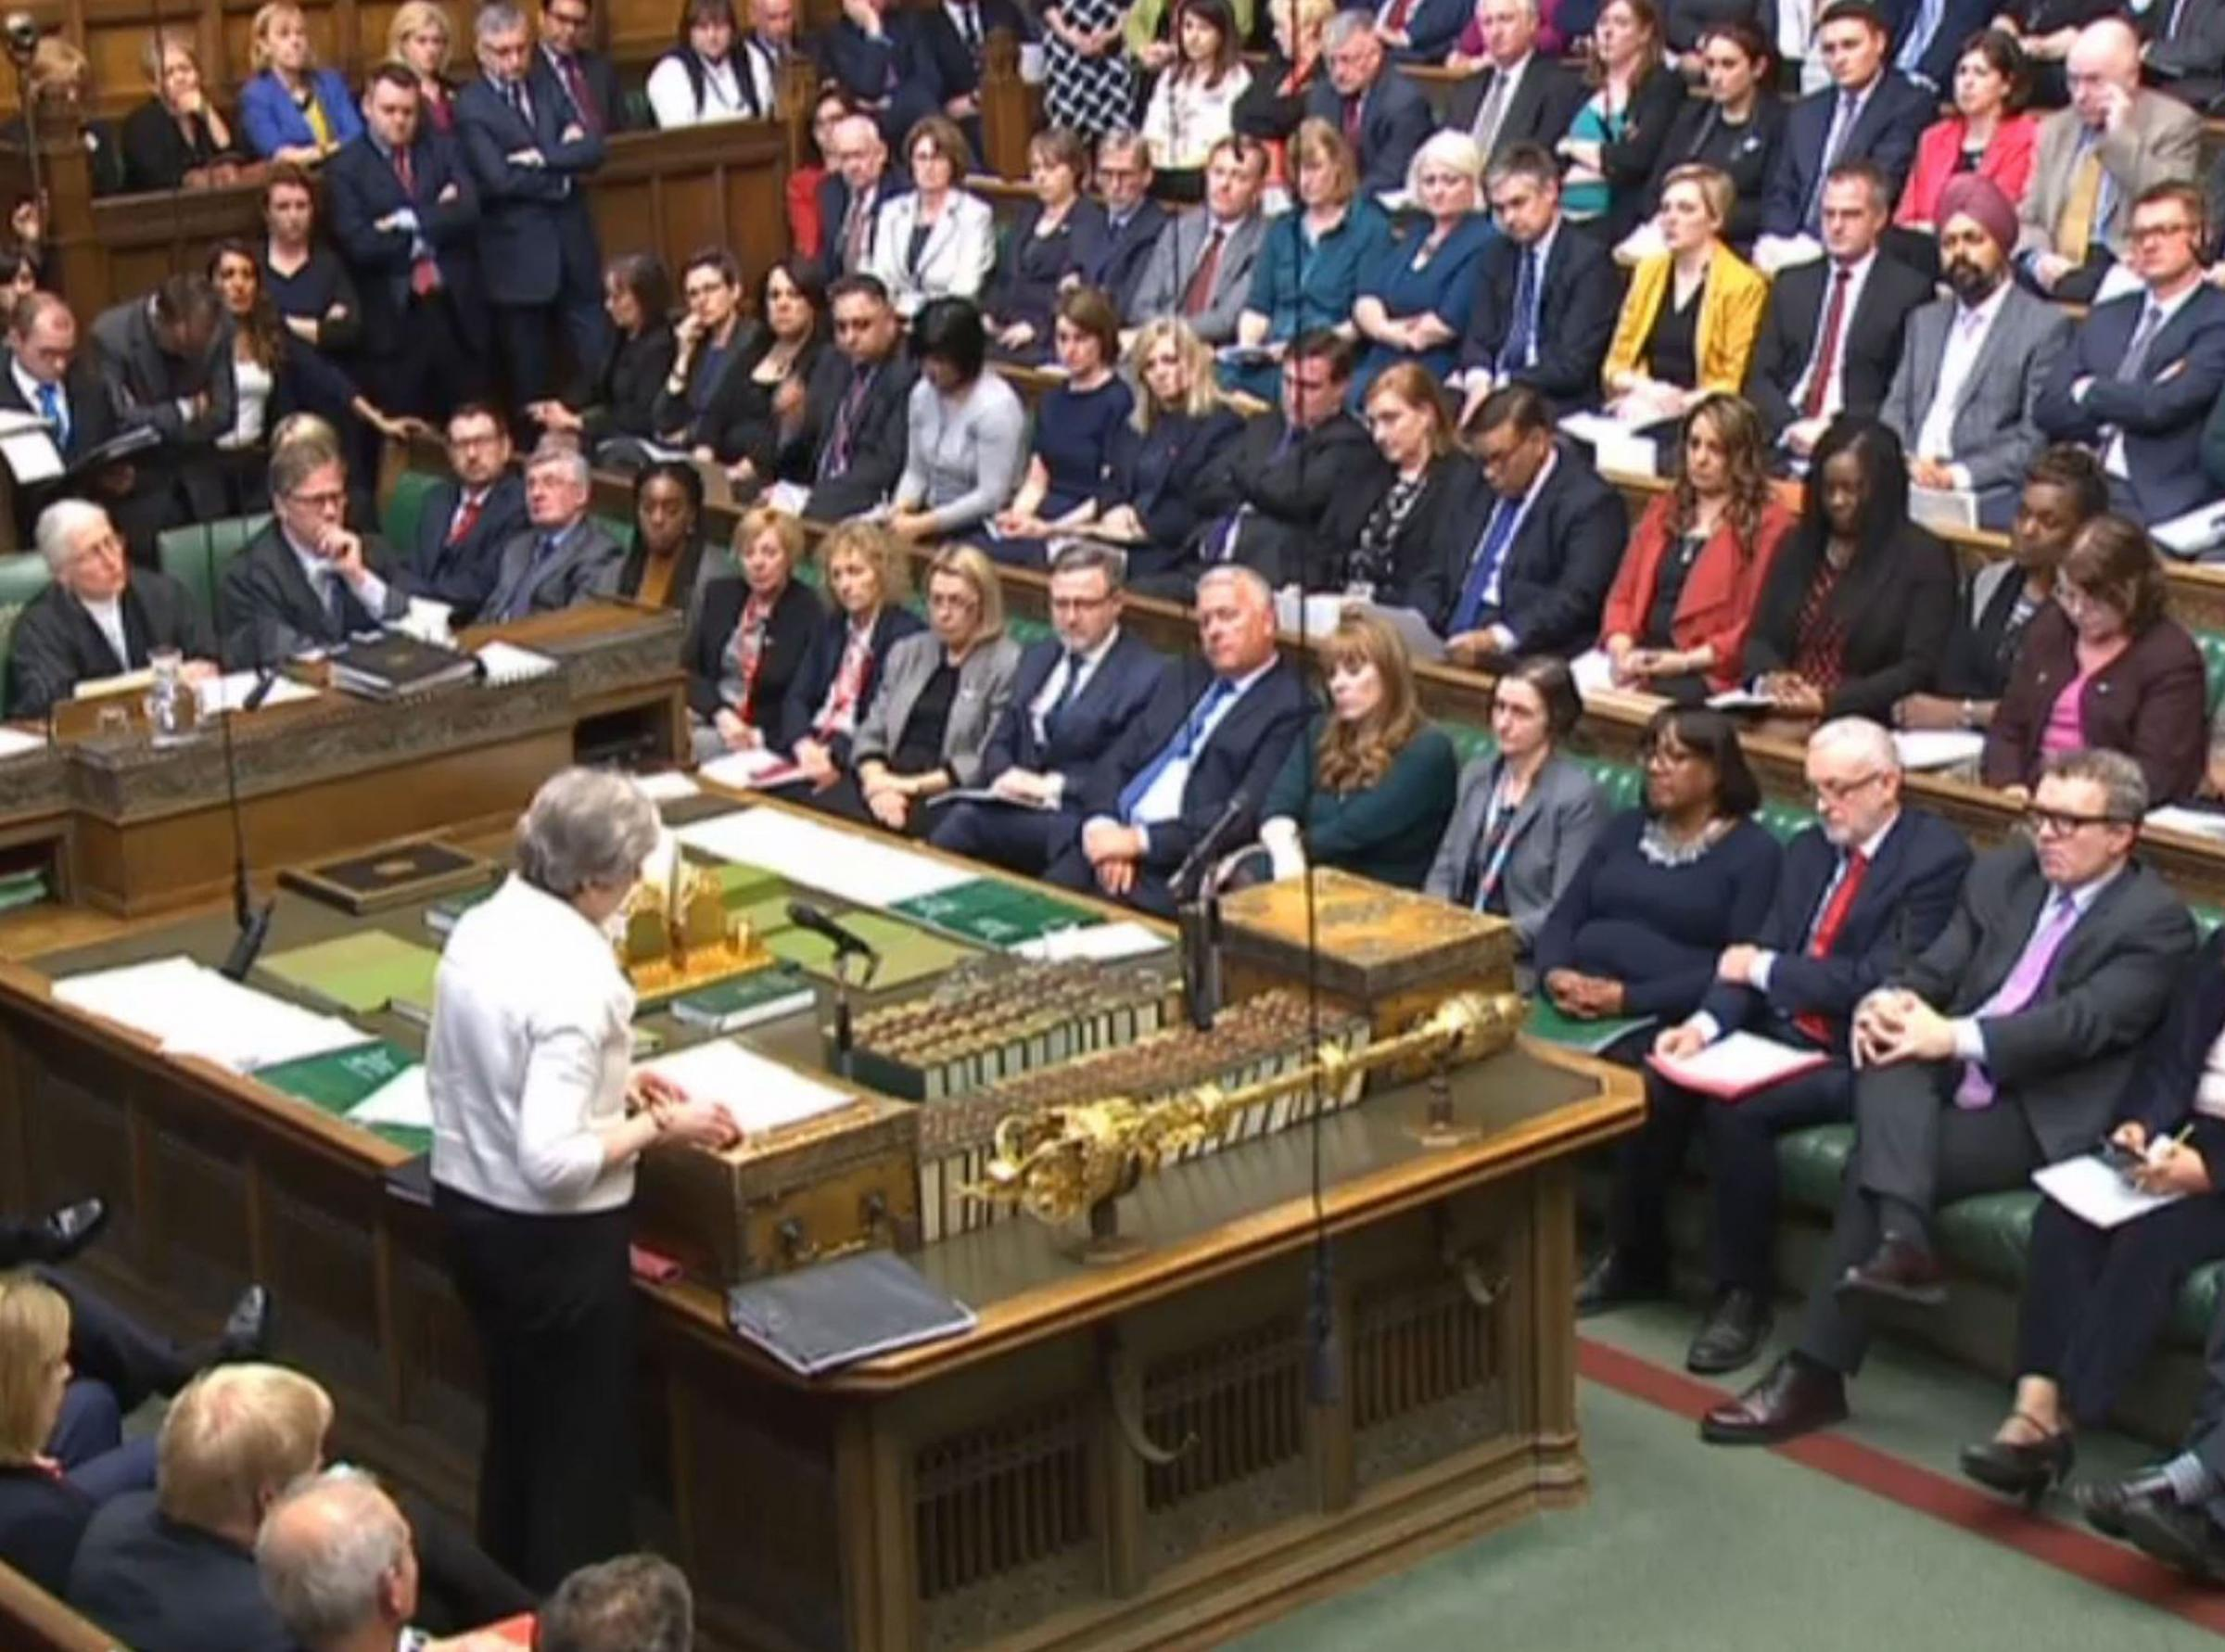 May made a statement to MPs in the House of Commons over her decision to launch air strikes against Syria